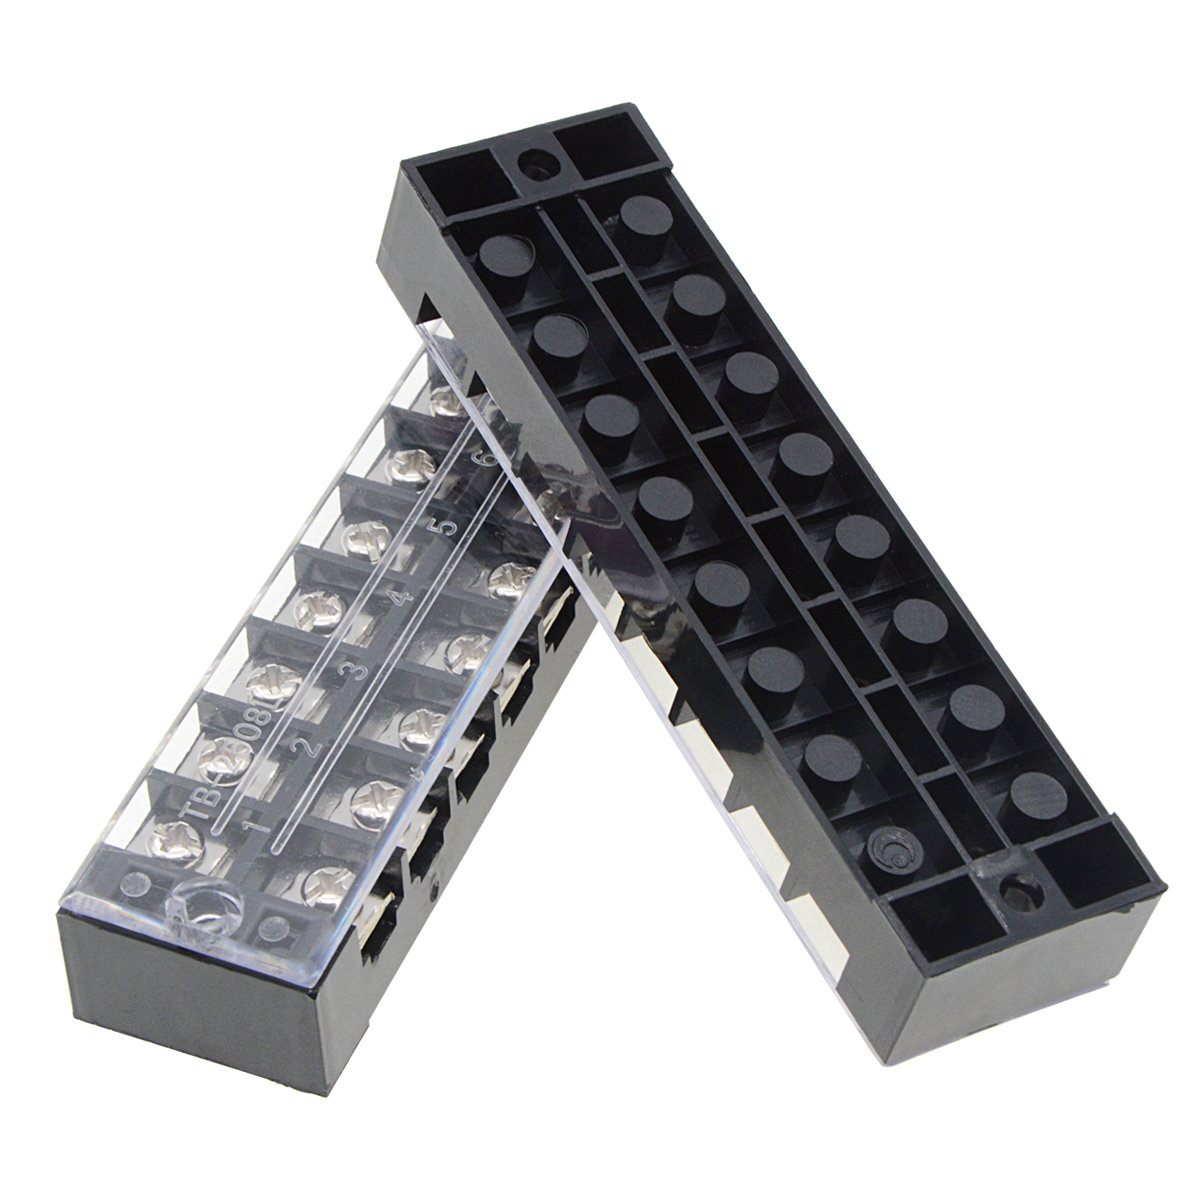 YXQ 3 Pcs 8 Position Double Rows Wire Block Barrier Screw Terminal Covered Strip 600V 25A TB 2508 Terminal Strip